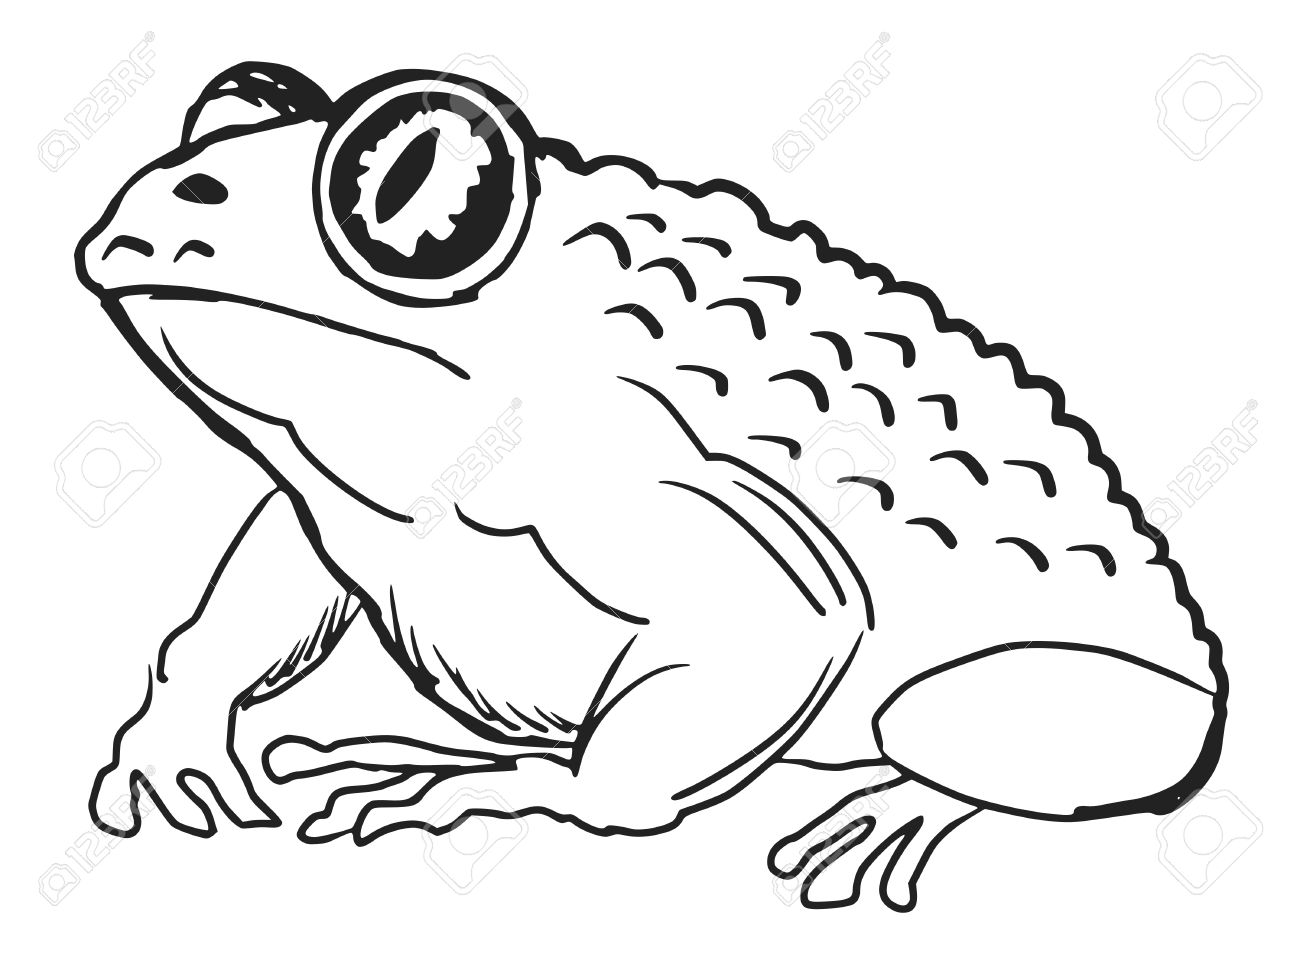 Cane Toad clipart #9, Download drawings